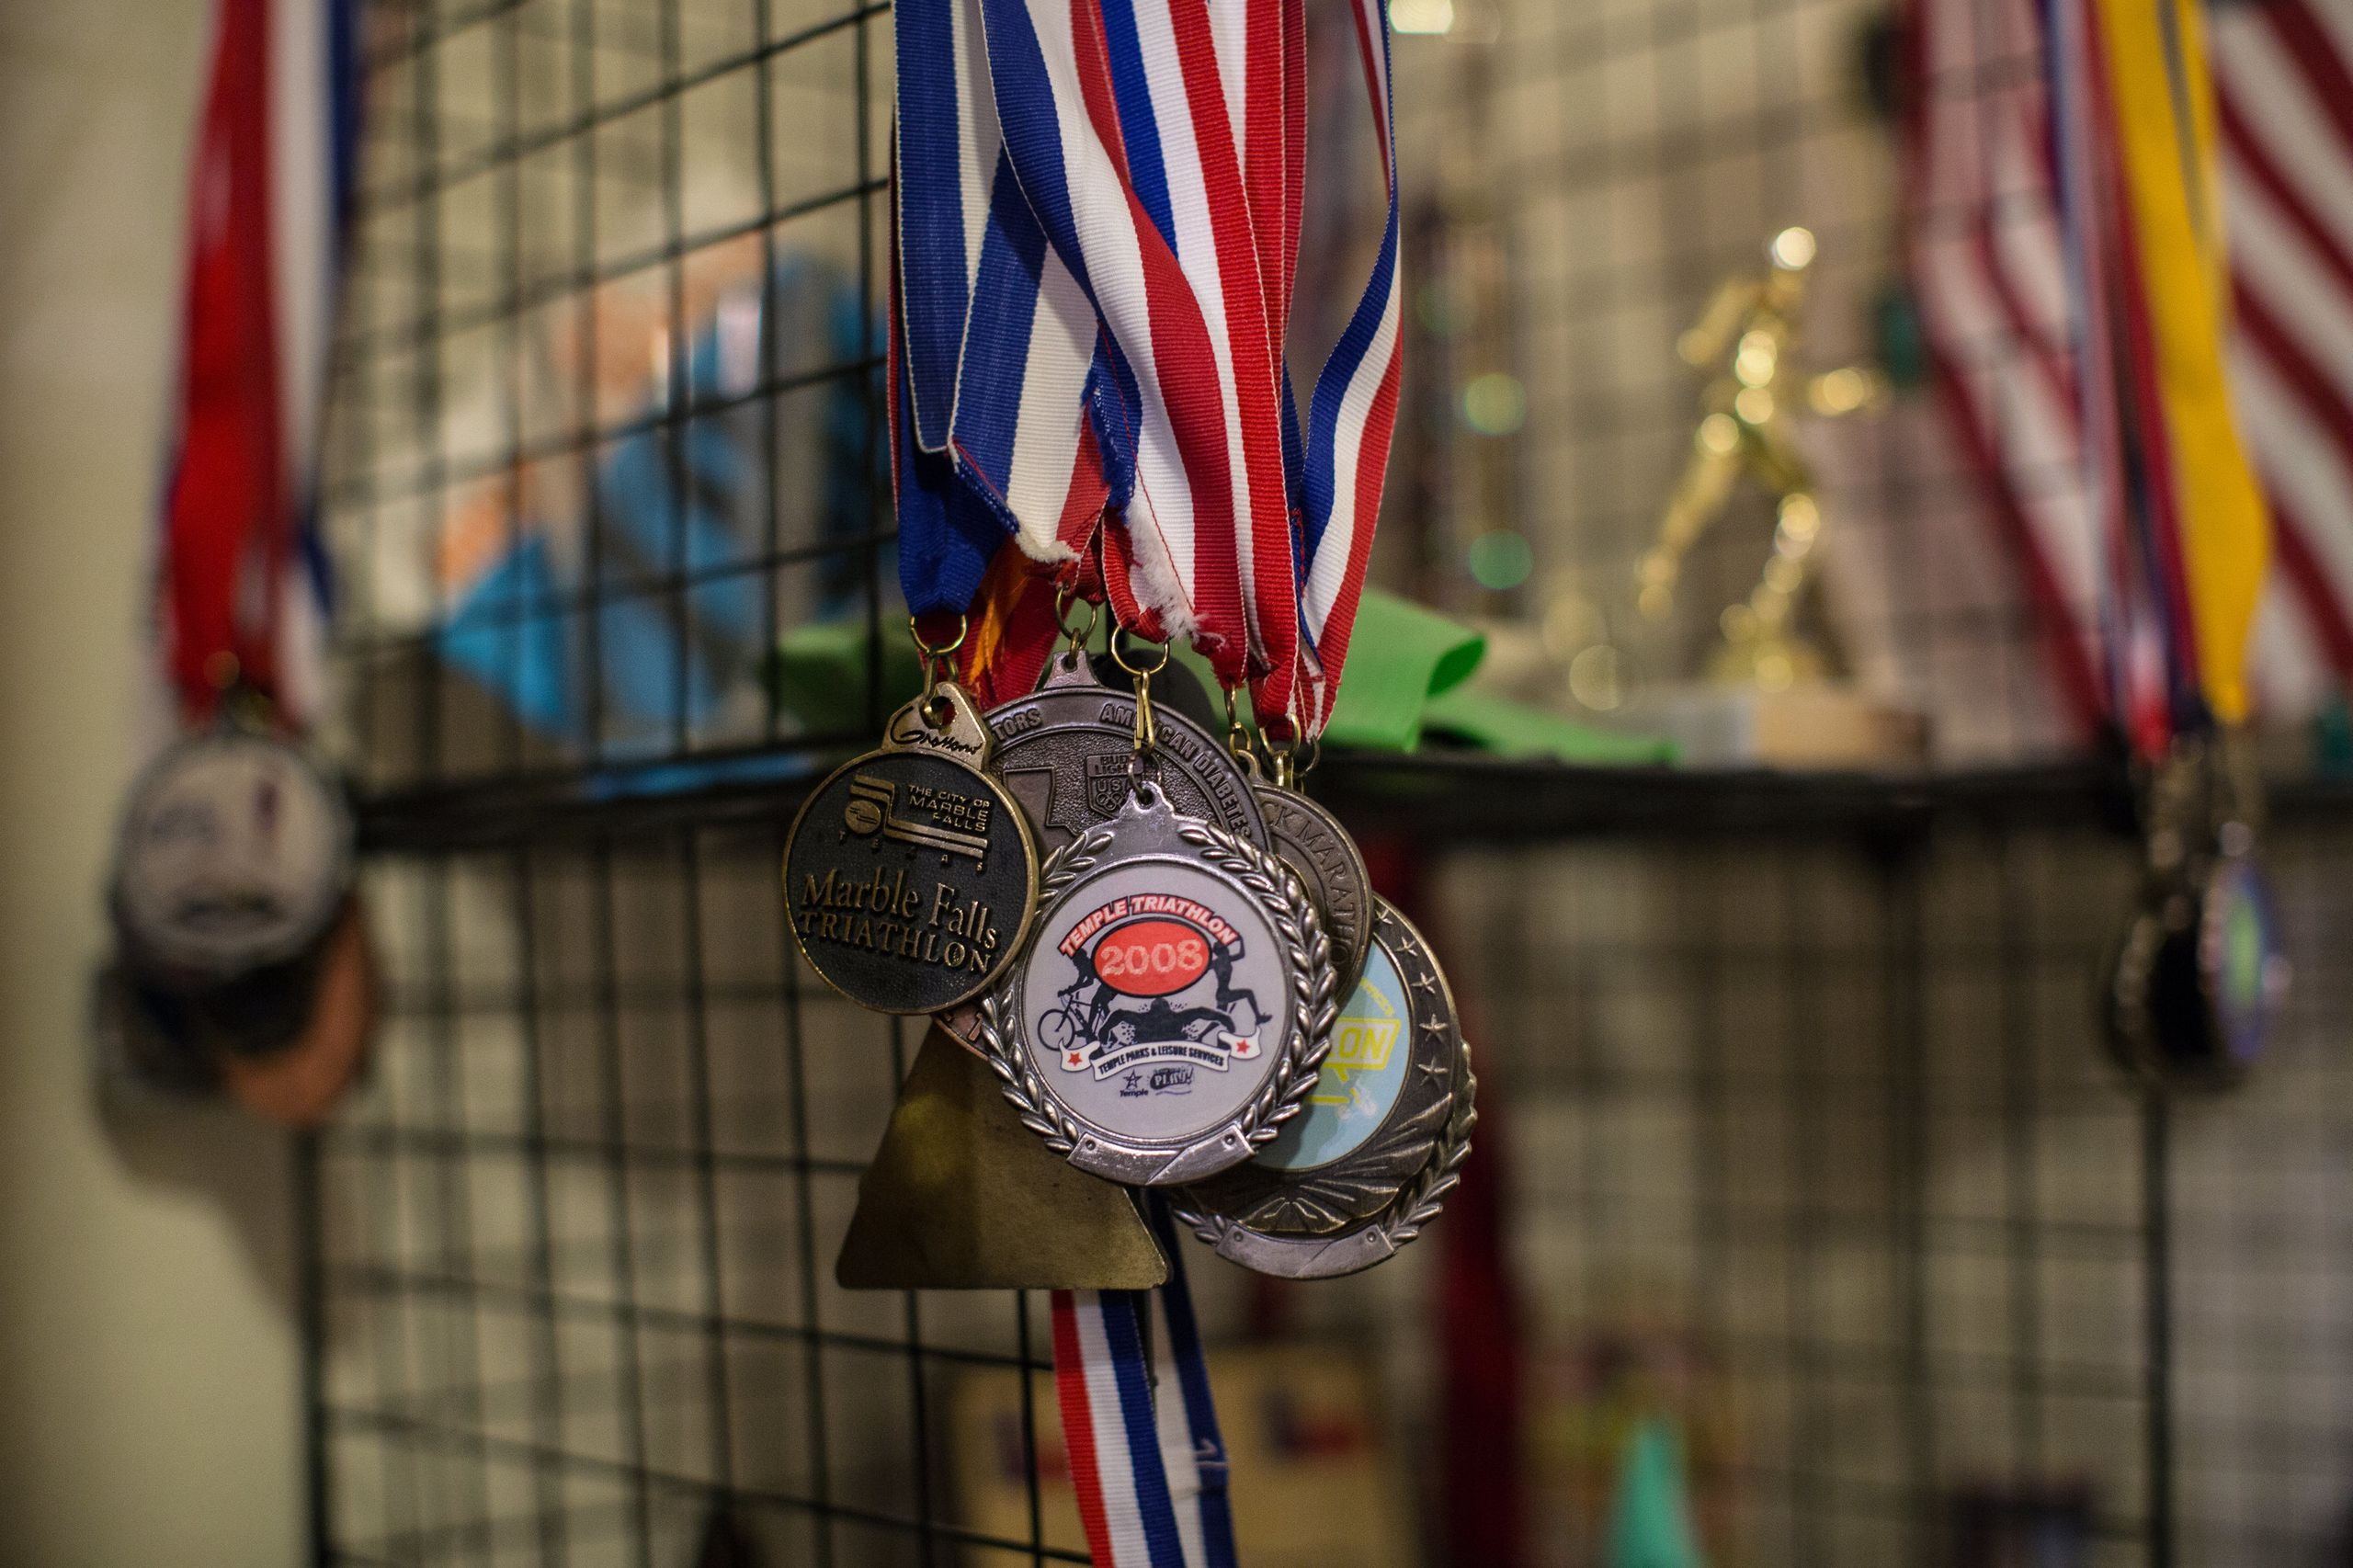 Trophies, plaques, ribbons, medals and other mementos from Yarling's triathlon racing career are displayed at his home.